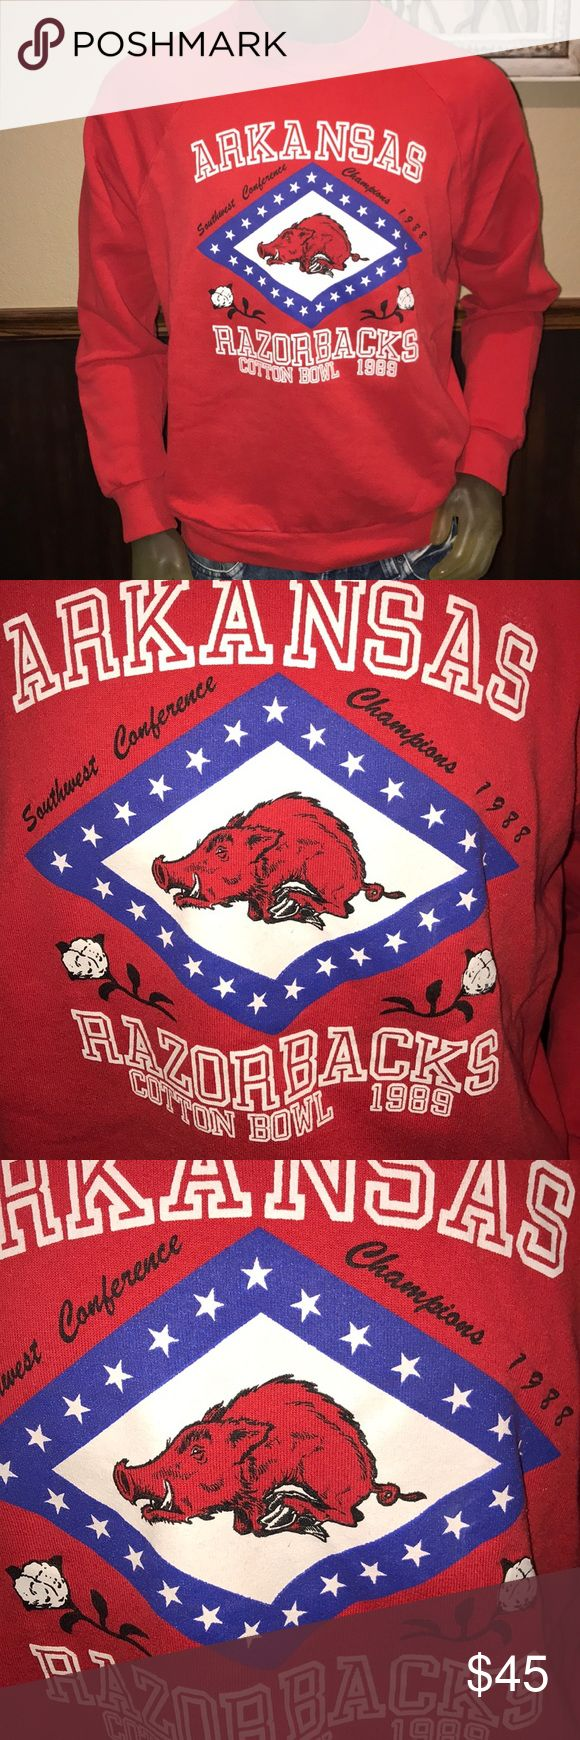 """WOW Vintage Arkansas Razorbacks 1989 Cotton Bowl WOW Vintage Arkansas Razorbacks Football 🏈 1989 Cotton Bowl Razorback - 1988 Southwest Conference Champions - Get a piece of history. This sweatshirt is in amazing condition. 23"""" Pit to pit / 26"""" Top of the shoulder to the bottom of the shirt - XL / Fits more like a large Vintage Shirts Sweatshirts & Hoodies"""